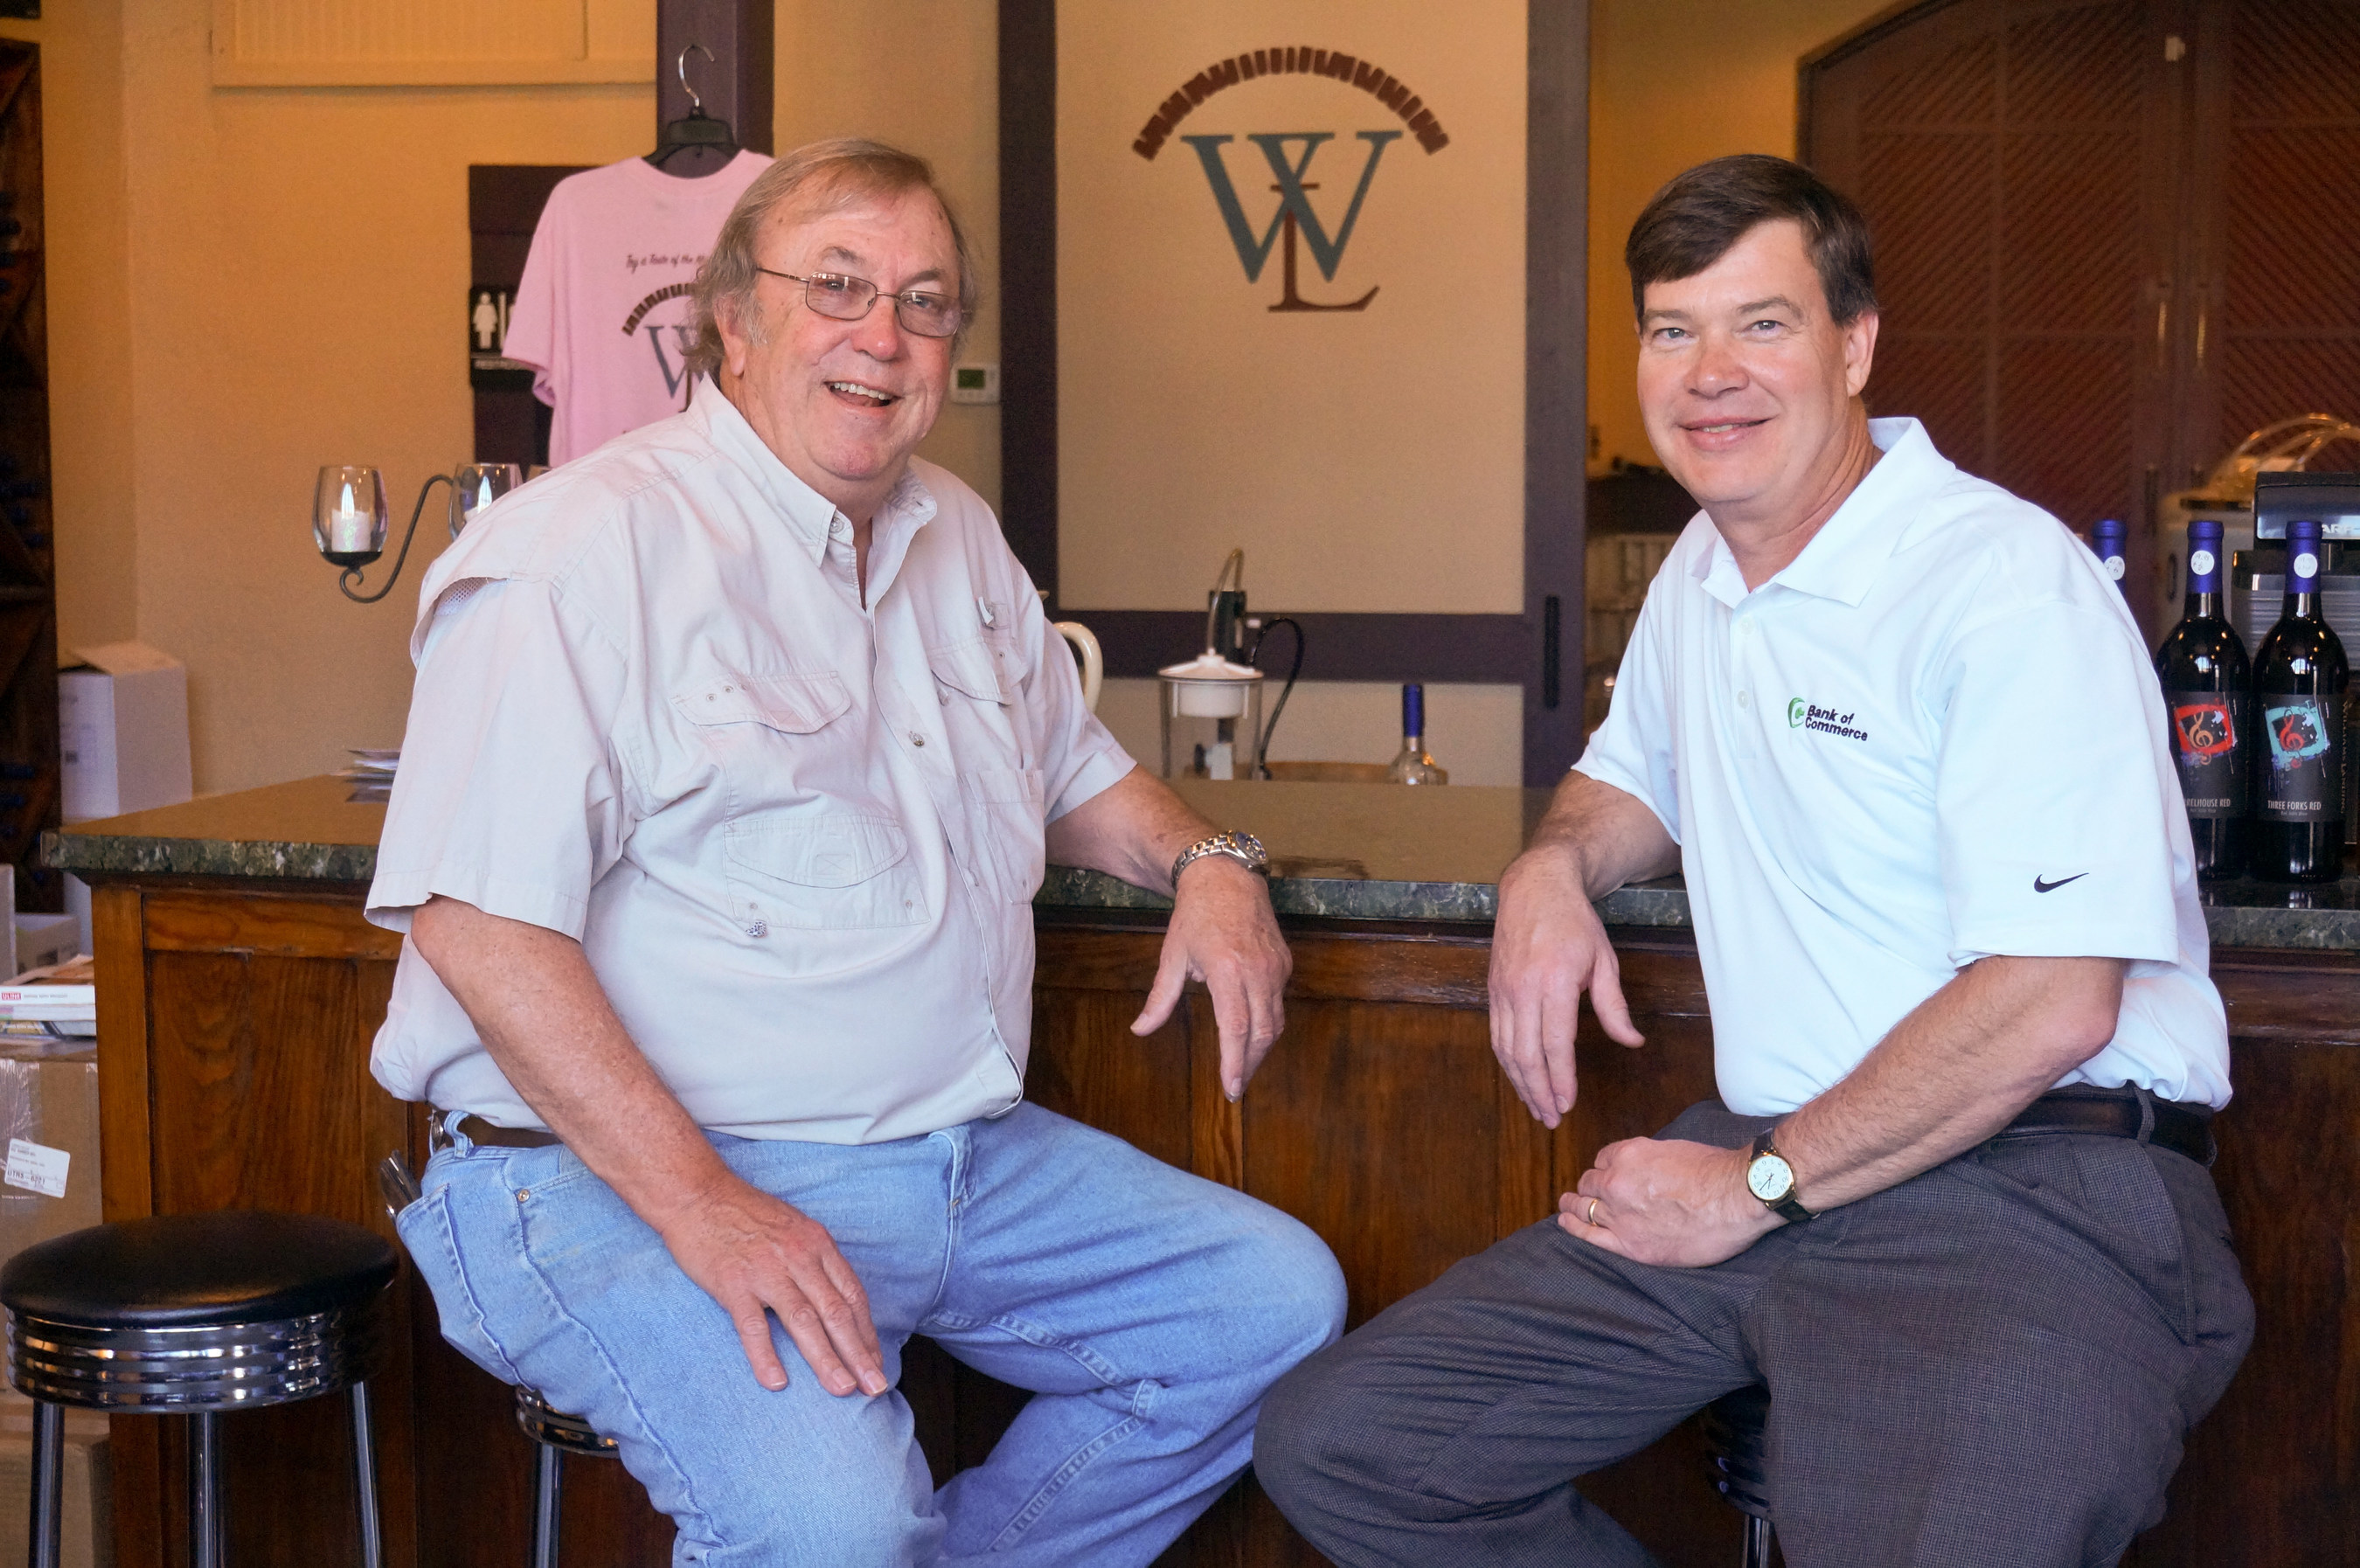 Lonnie Bailey, owner of The Winery at Williams Landing, with Bank of Commerce EVP Jeff Crick.